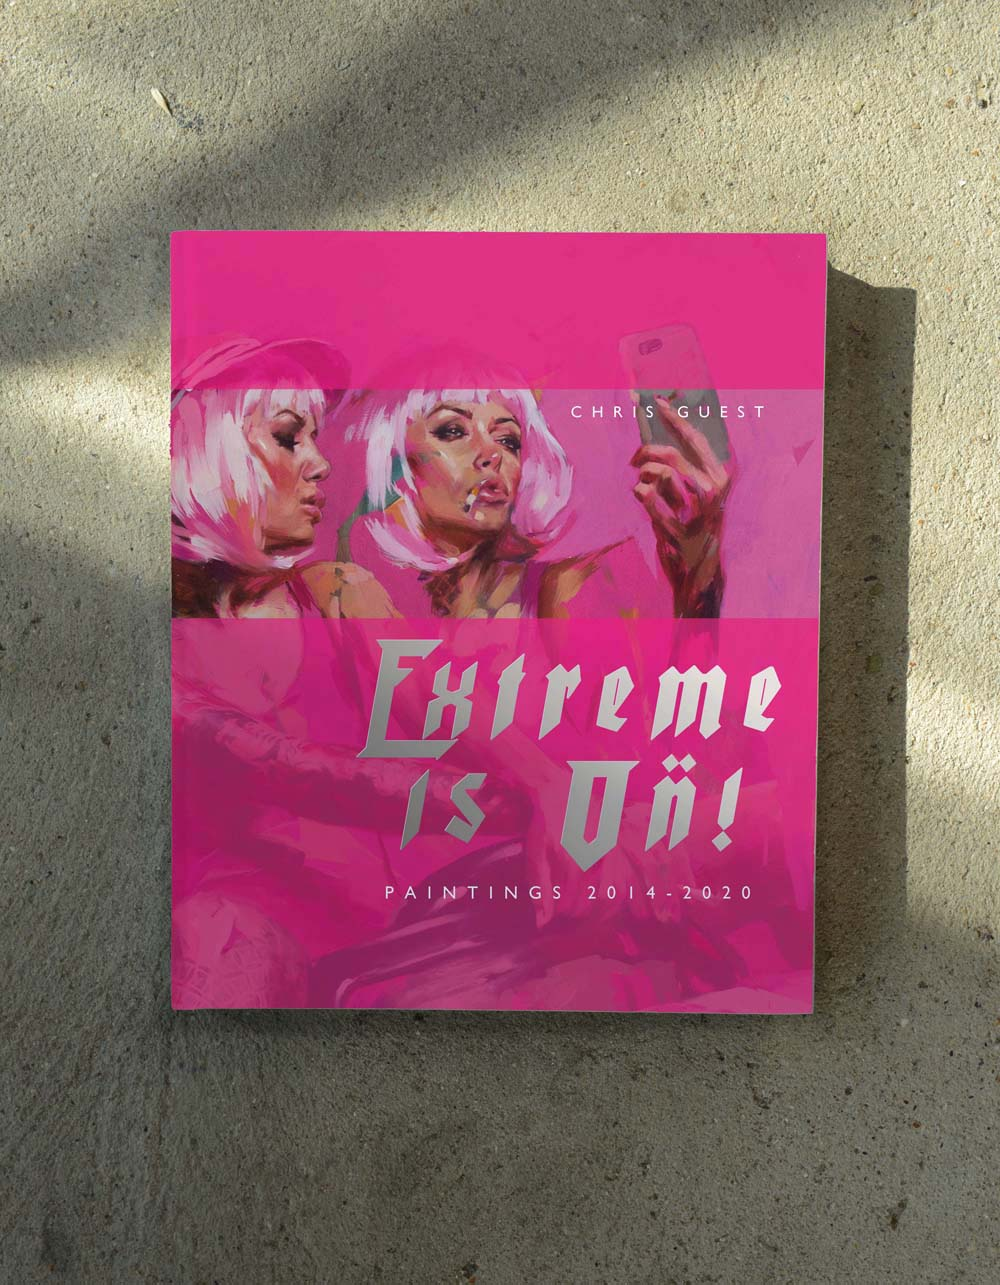 Image of 'EXTREME IS ON!' Pink Car Selfie Version Pre Release